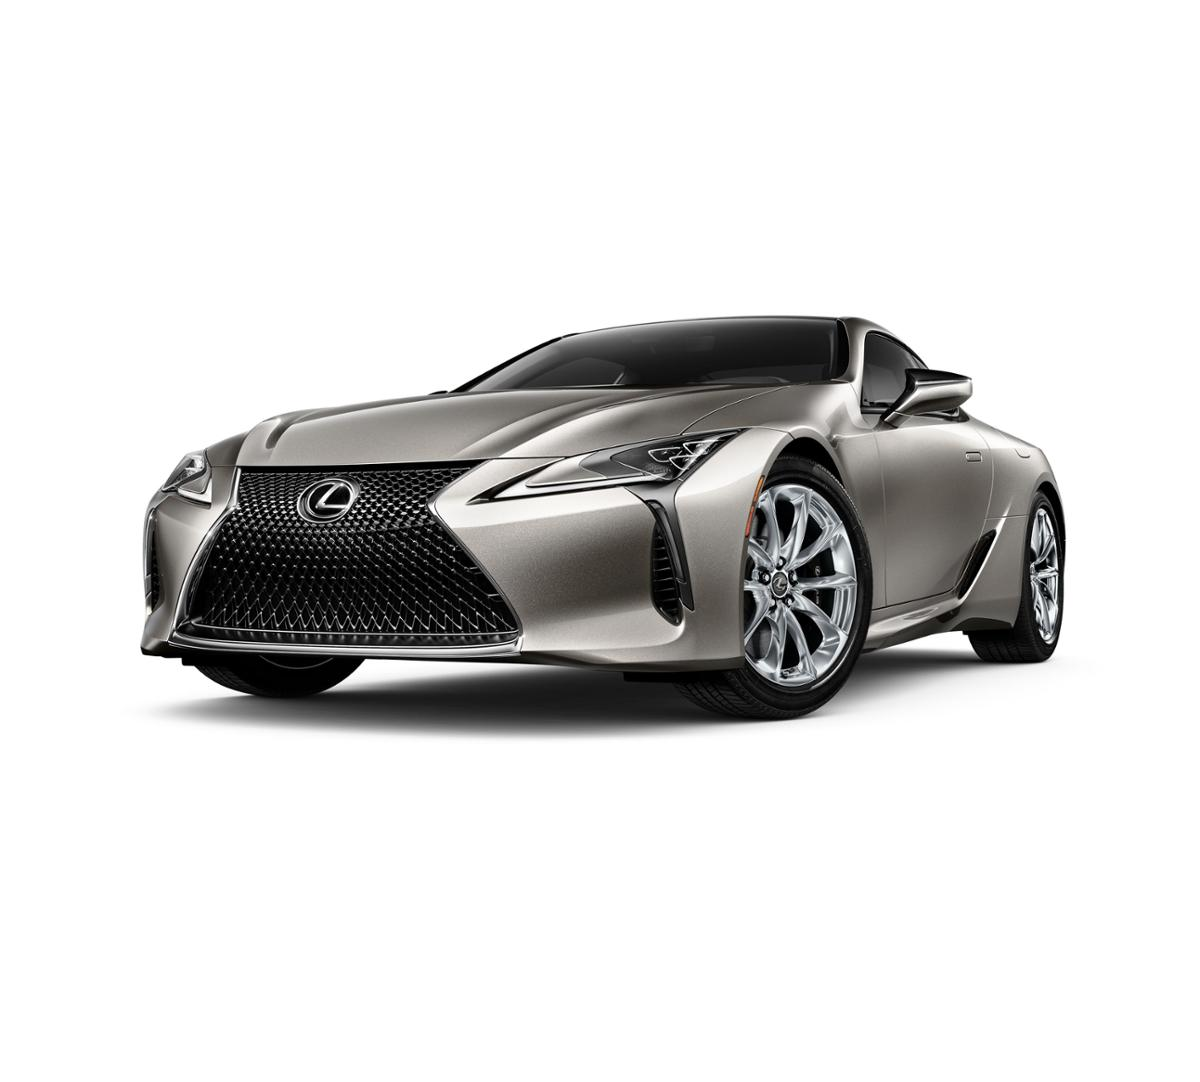 Larry h miller lexus spokane - 2018 Lexus Lc 500 Vehicle Photo In Spokane Wa 99201